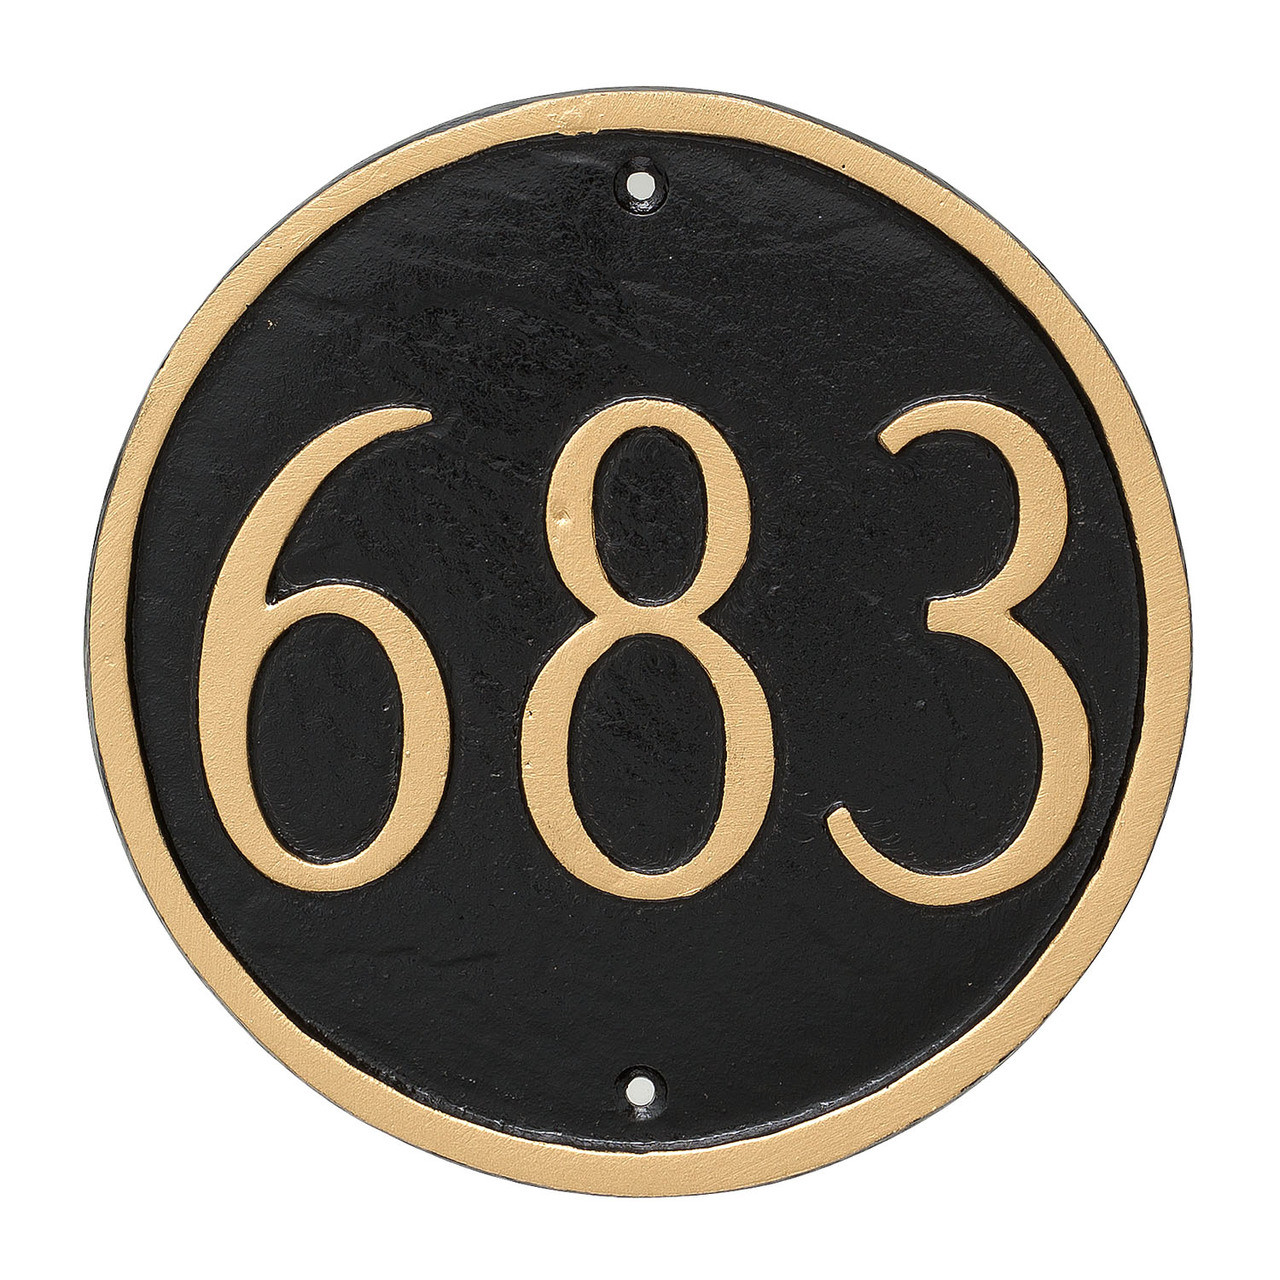 Round House Number Plaque (Large) shown with Black background and Gold numbers and border color